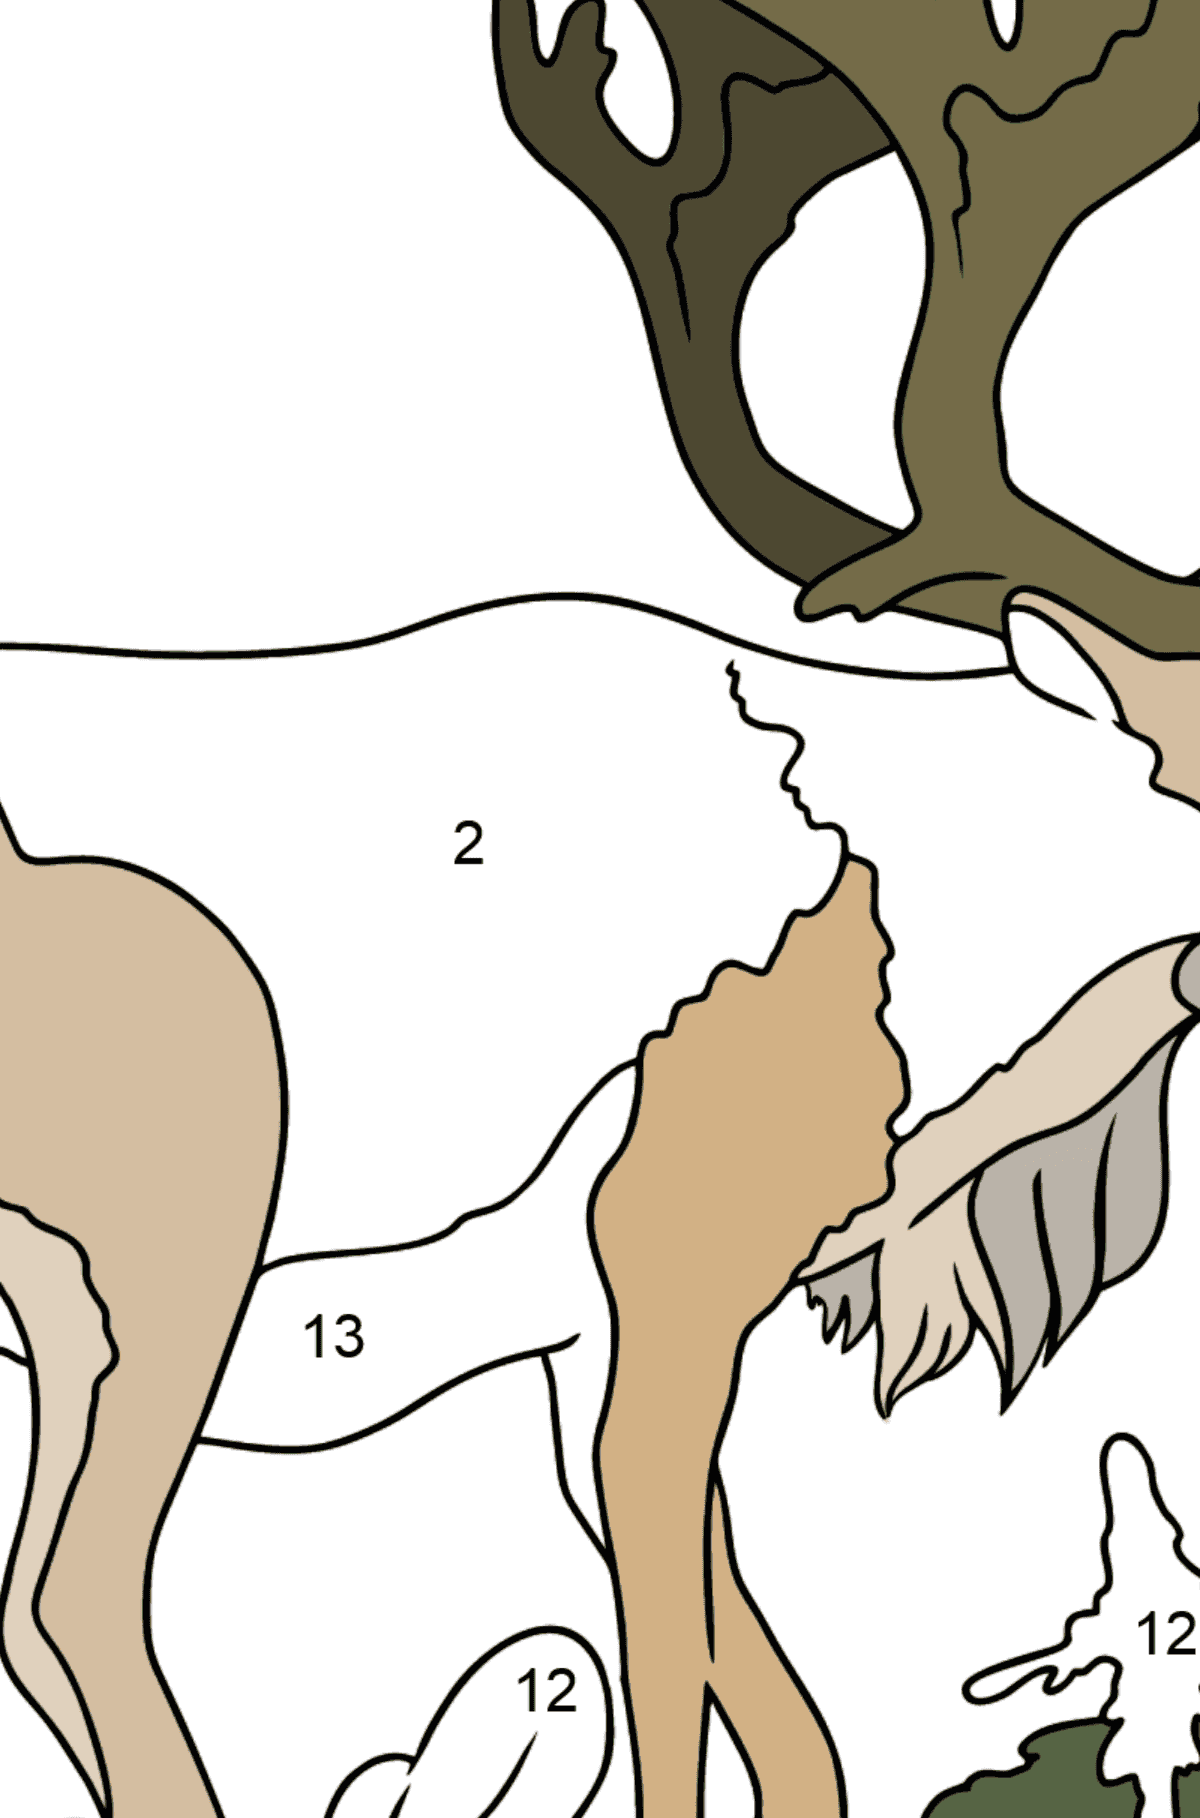 Coloring Page - a Deer with Gorgeous Antlers - Coloring by Numbers for Kids